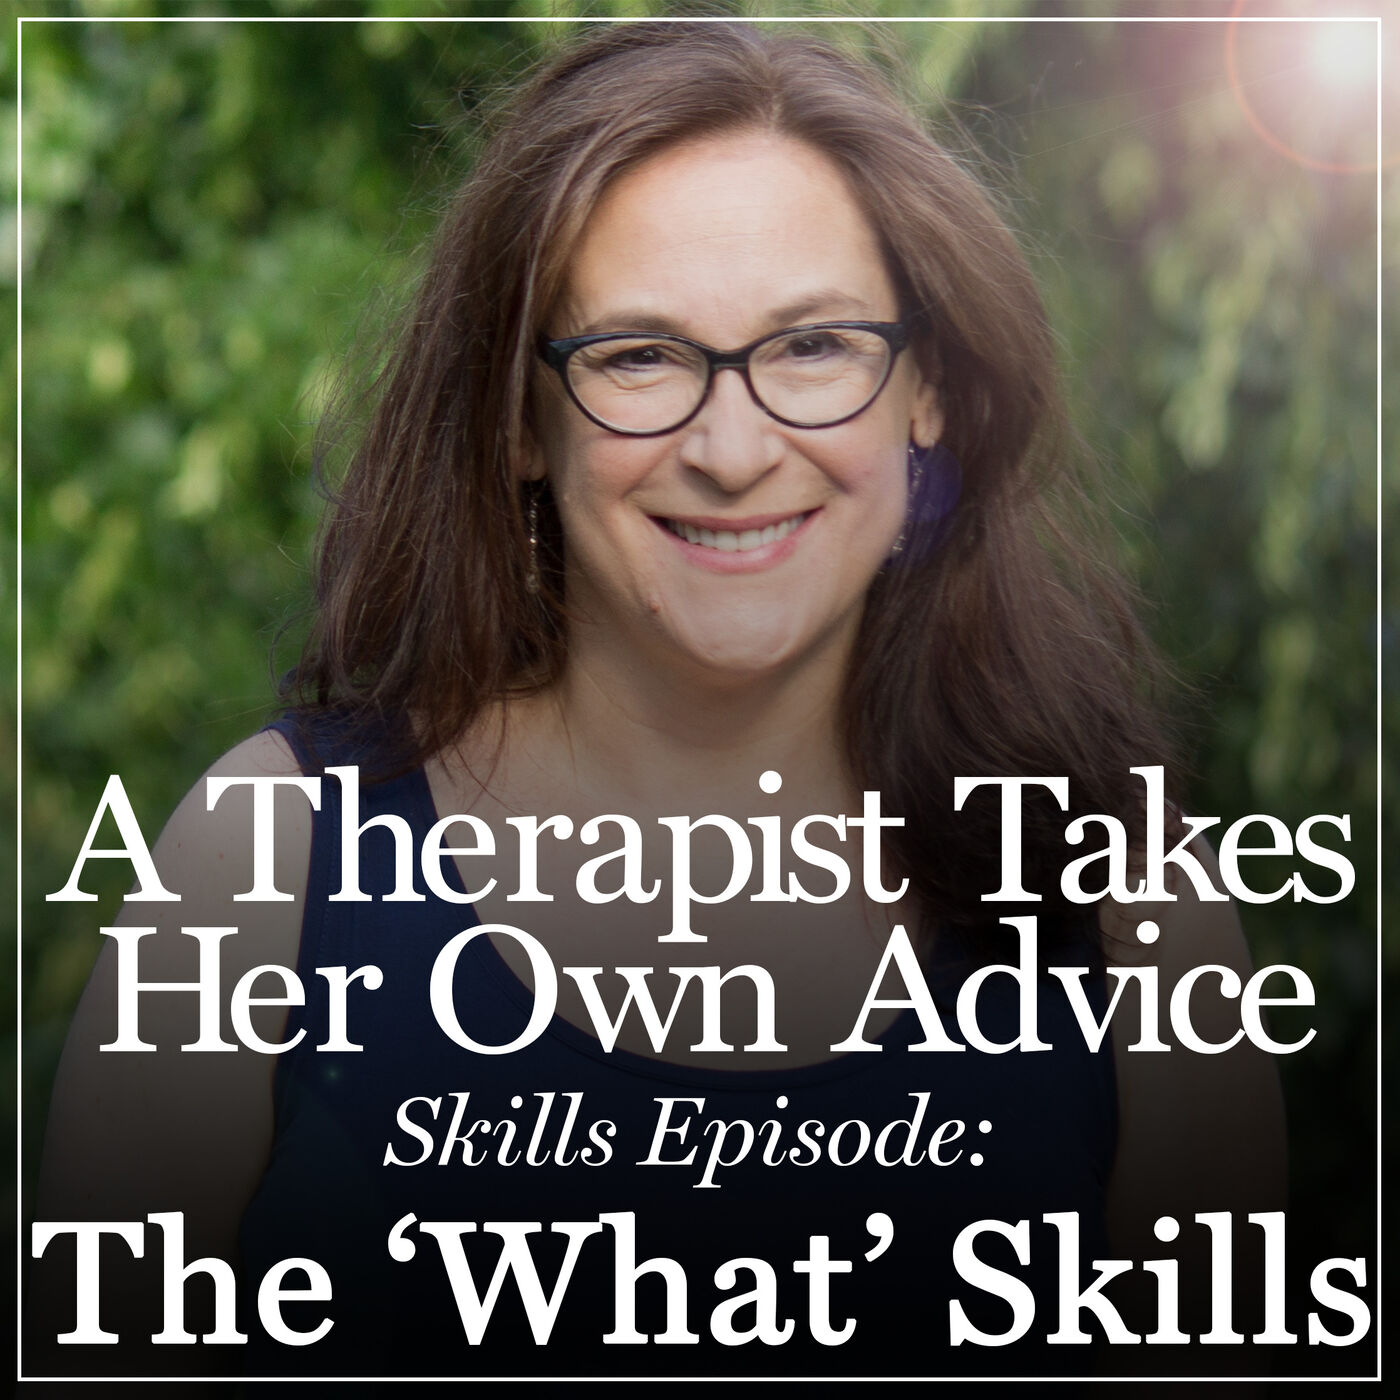 Demystifying Mindfulness: The What Skills